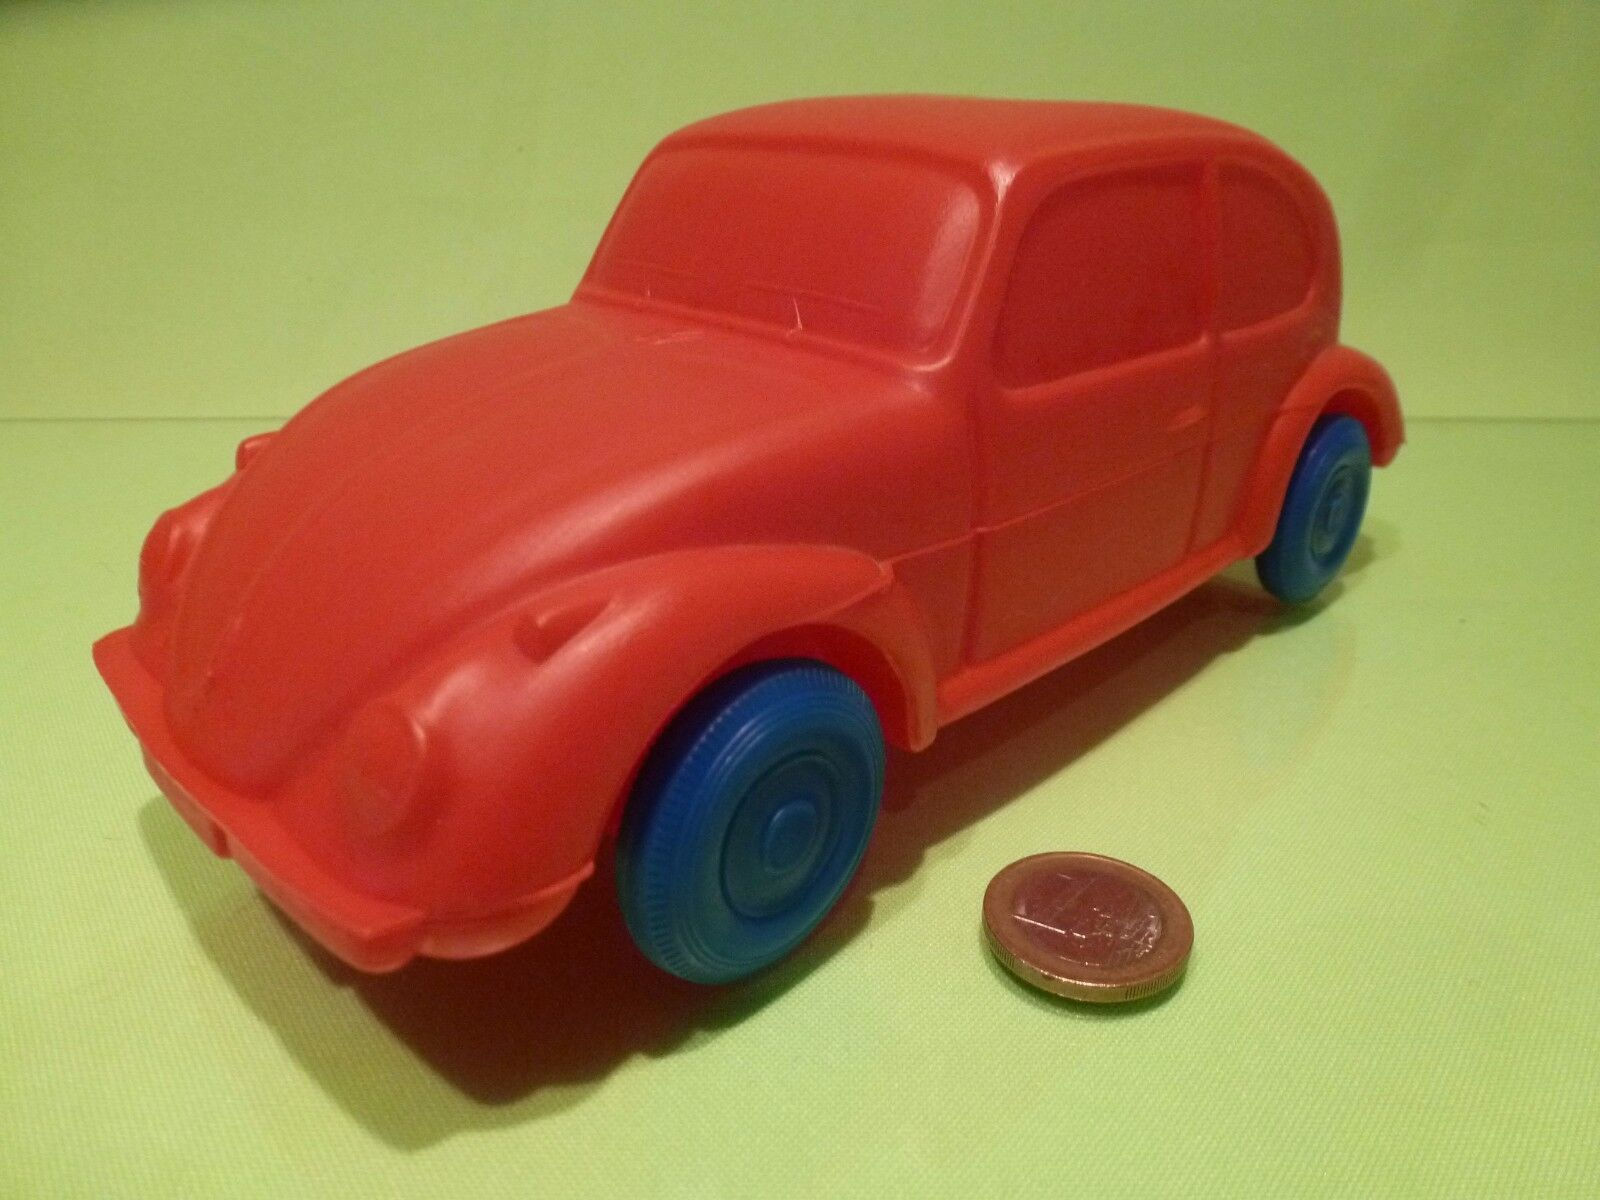 VINTAGE PLASTIC OLD VW VOLKSWAGEN BEETLE - PROMO - rosso L23.0cm - WEST GERMANY